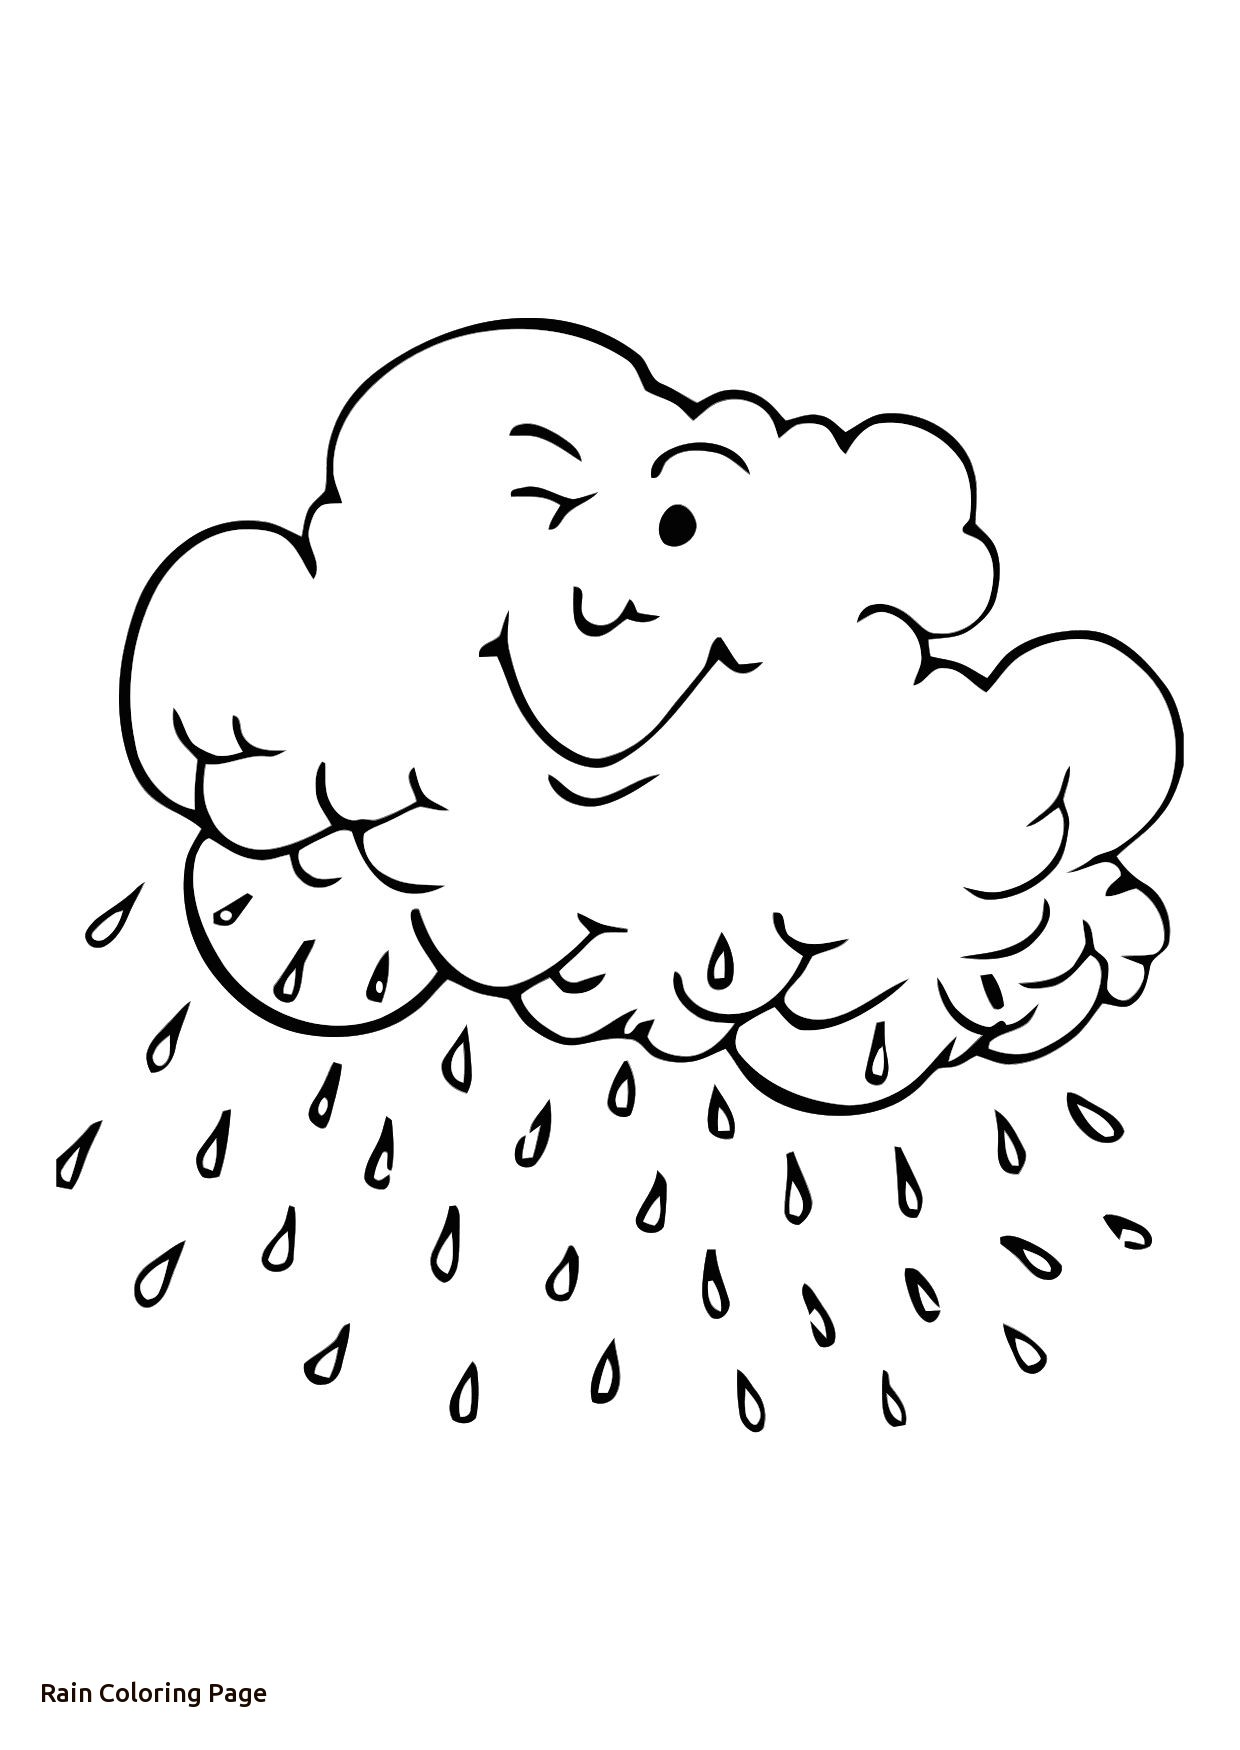 1240x1750 Rain Coloring Pages To Download And Print